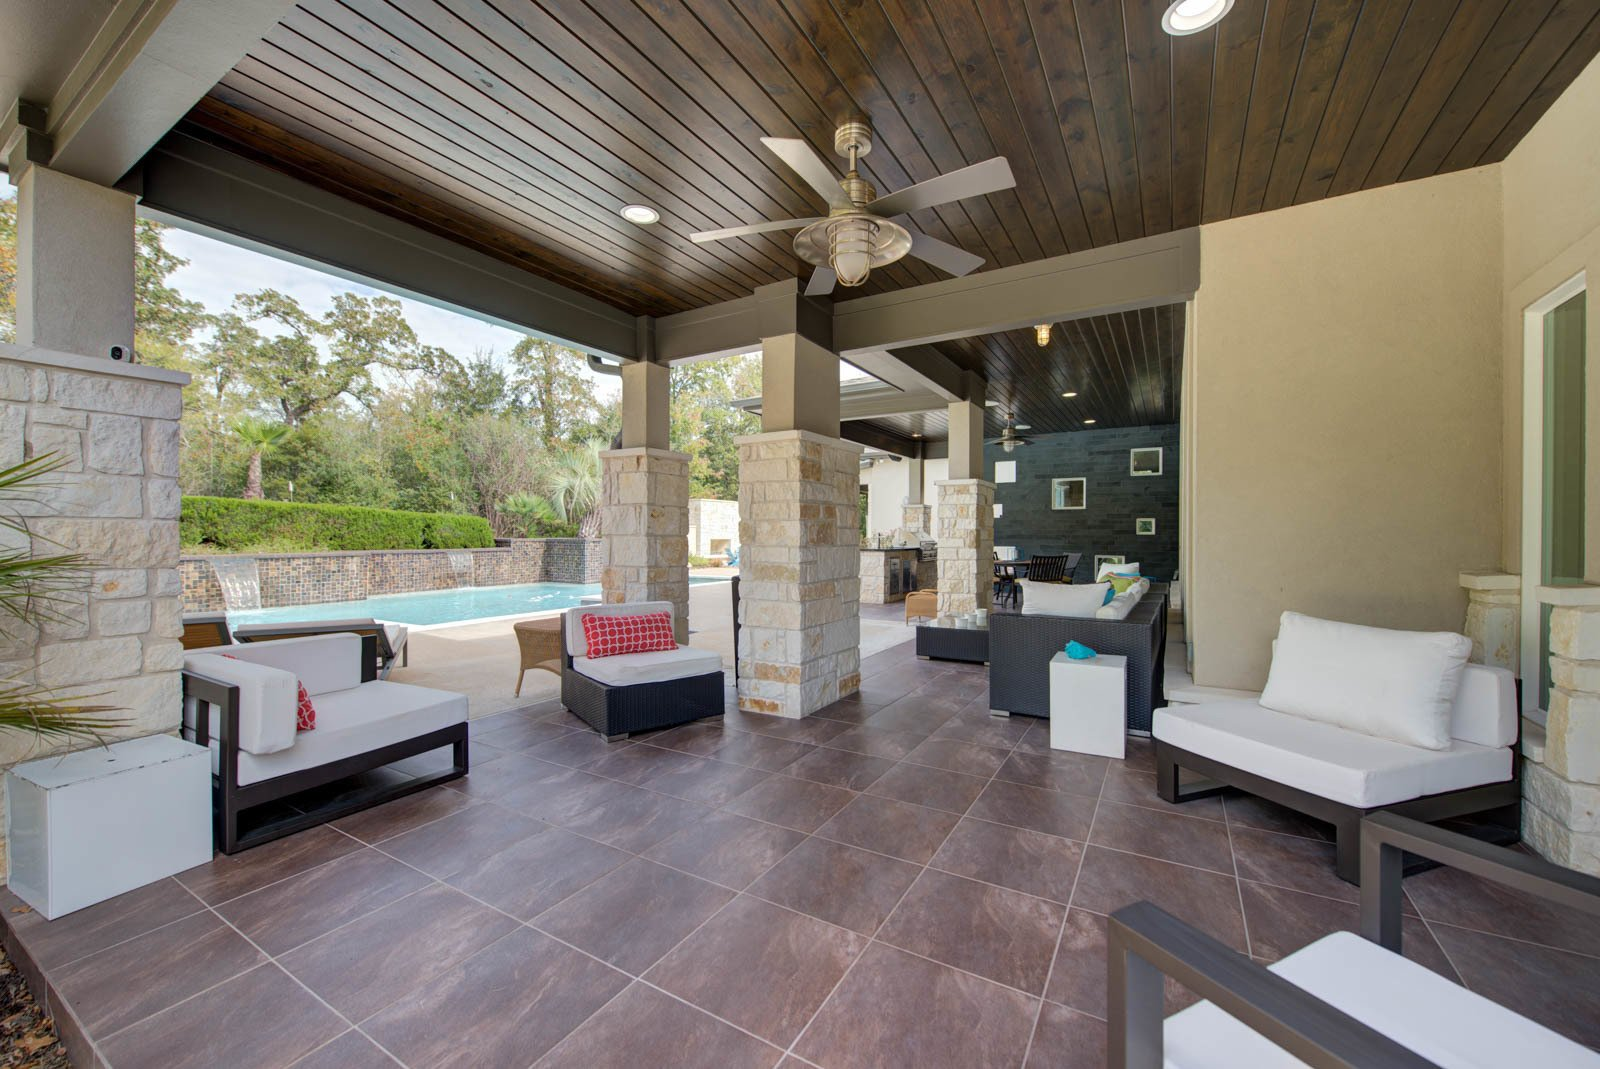 Outdoor, Tile Patio, Porch, Deck, and Large Patio, Porch, Deck Outdoor Living  The Carlson House